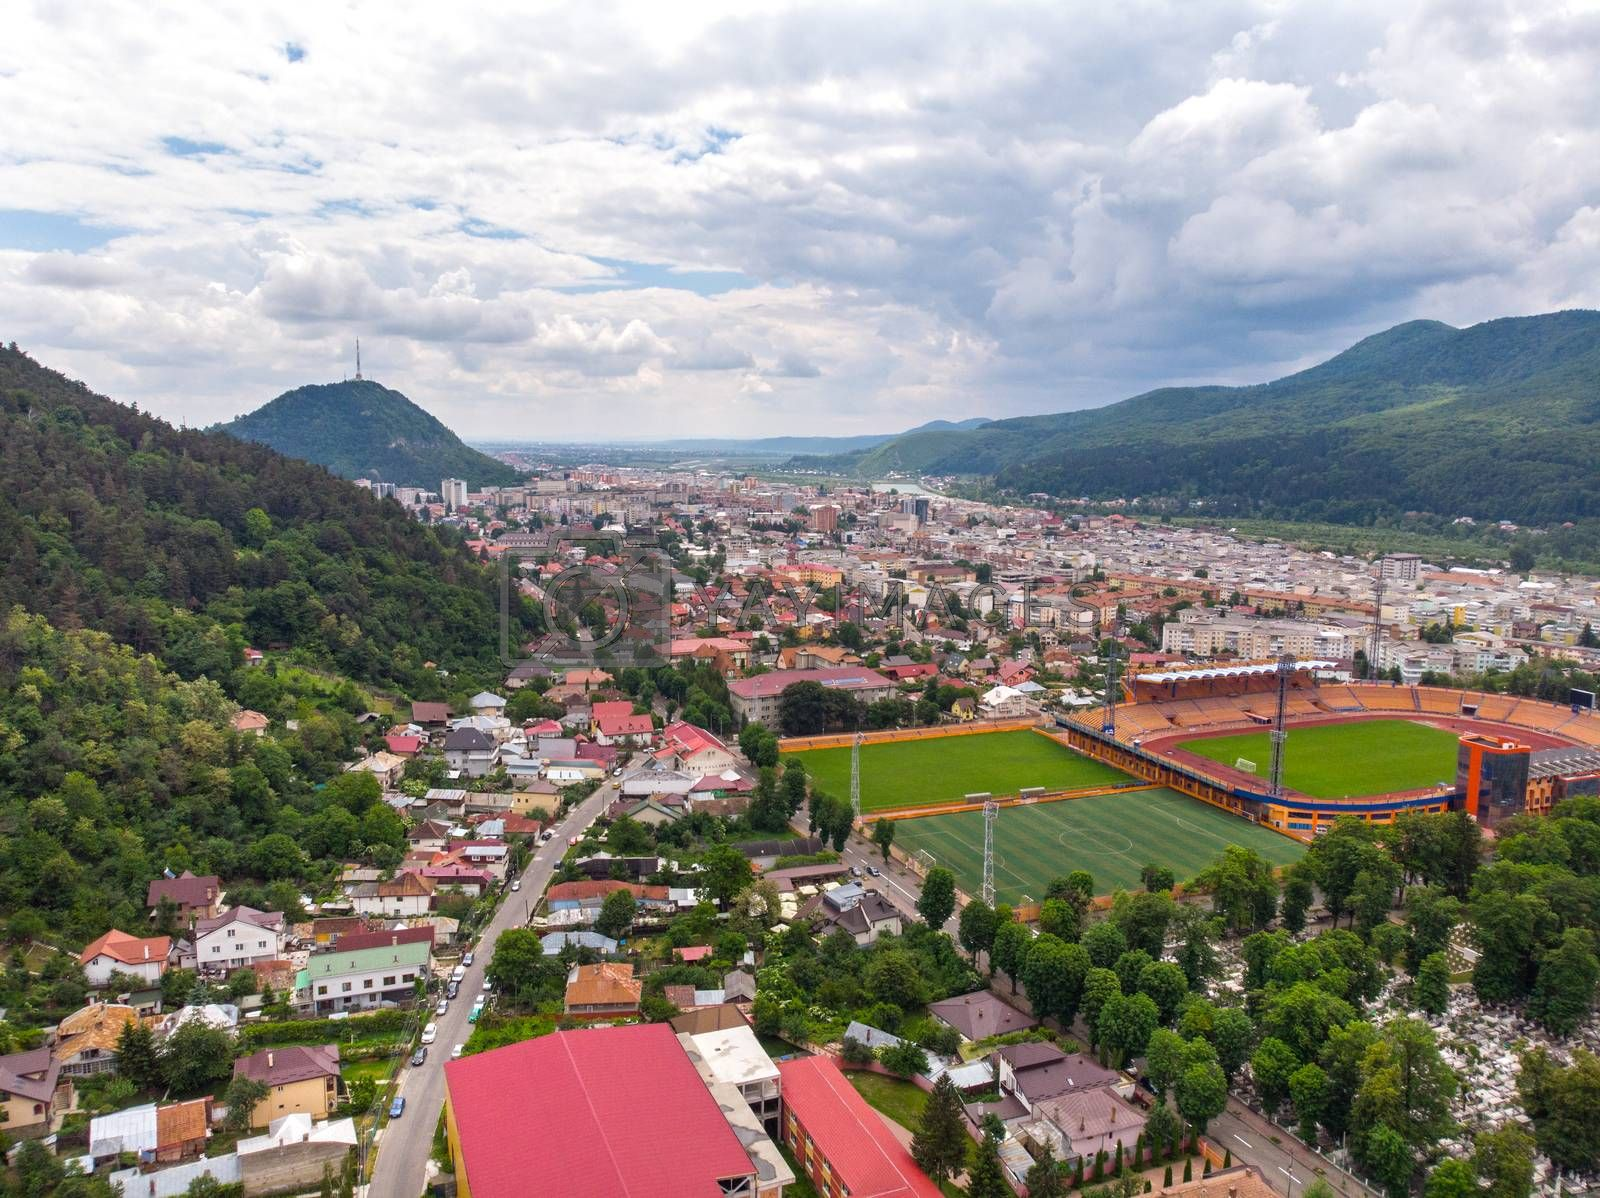 Aerial mountain city view with a small football stadium in front. Piatra Neamt aerial view in Romania